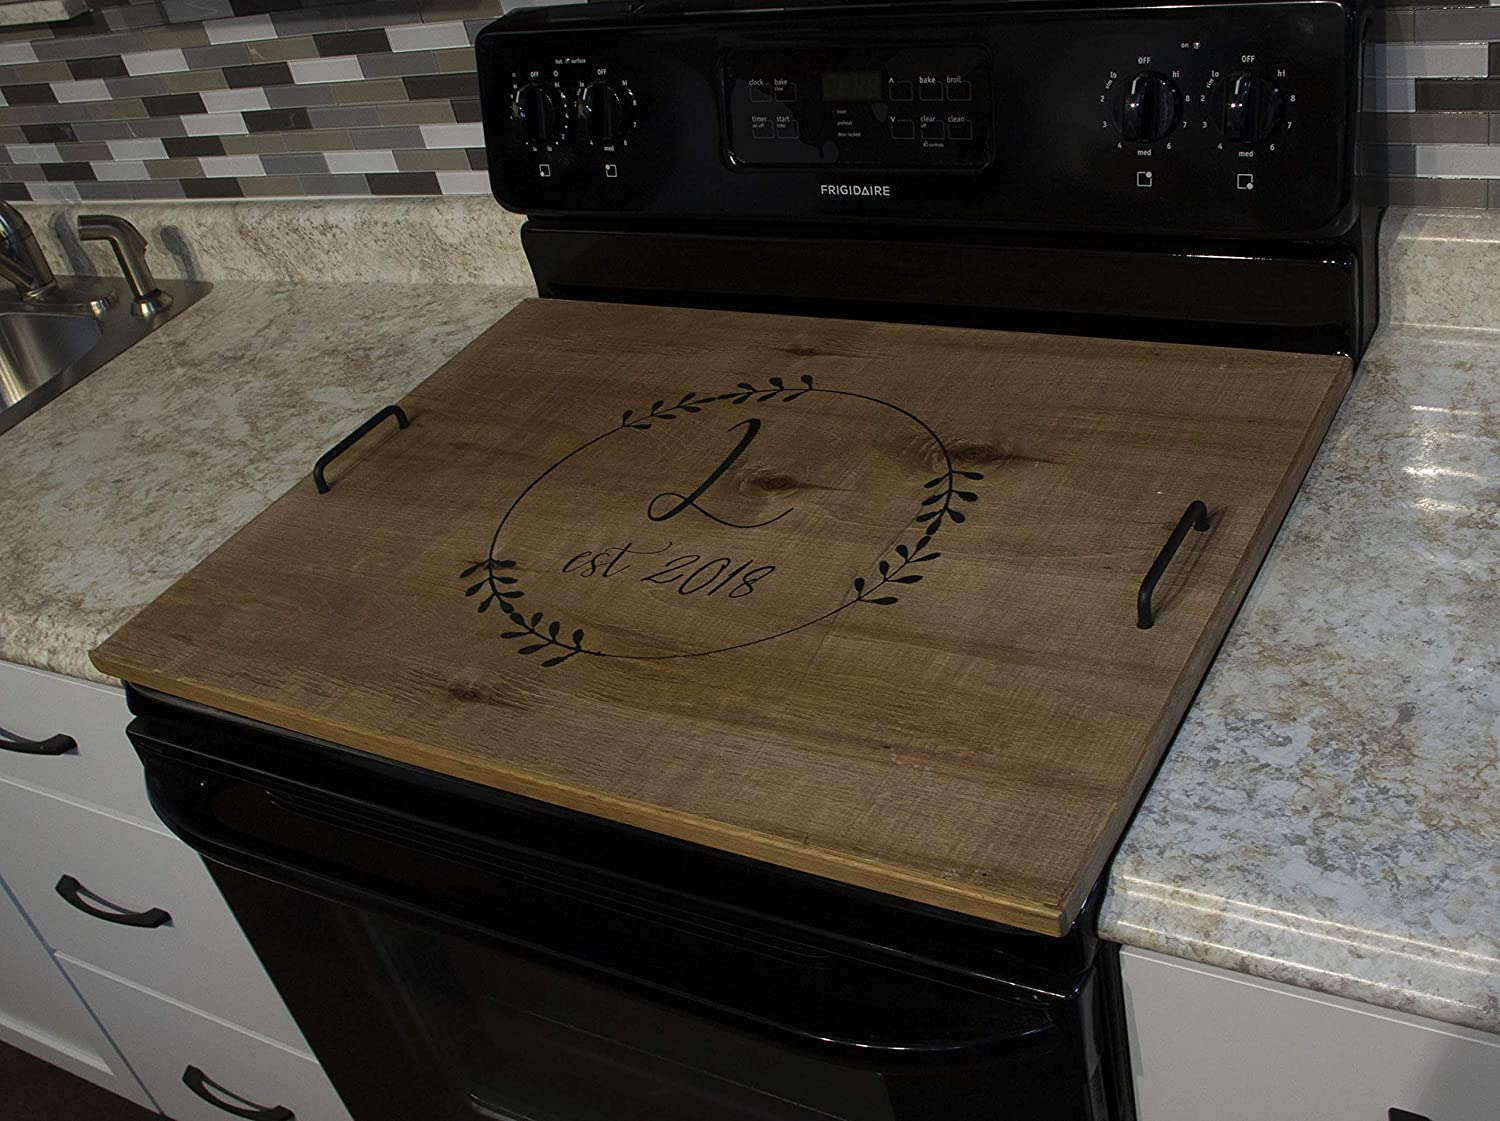 Pine Stove Top Cover, Noodle Board, Personalized Stove Cover